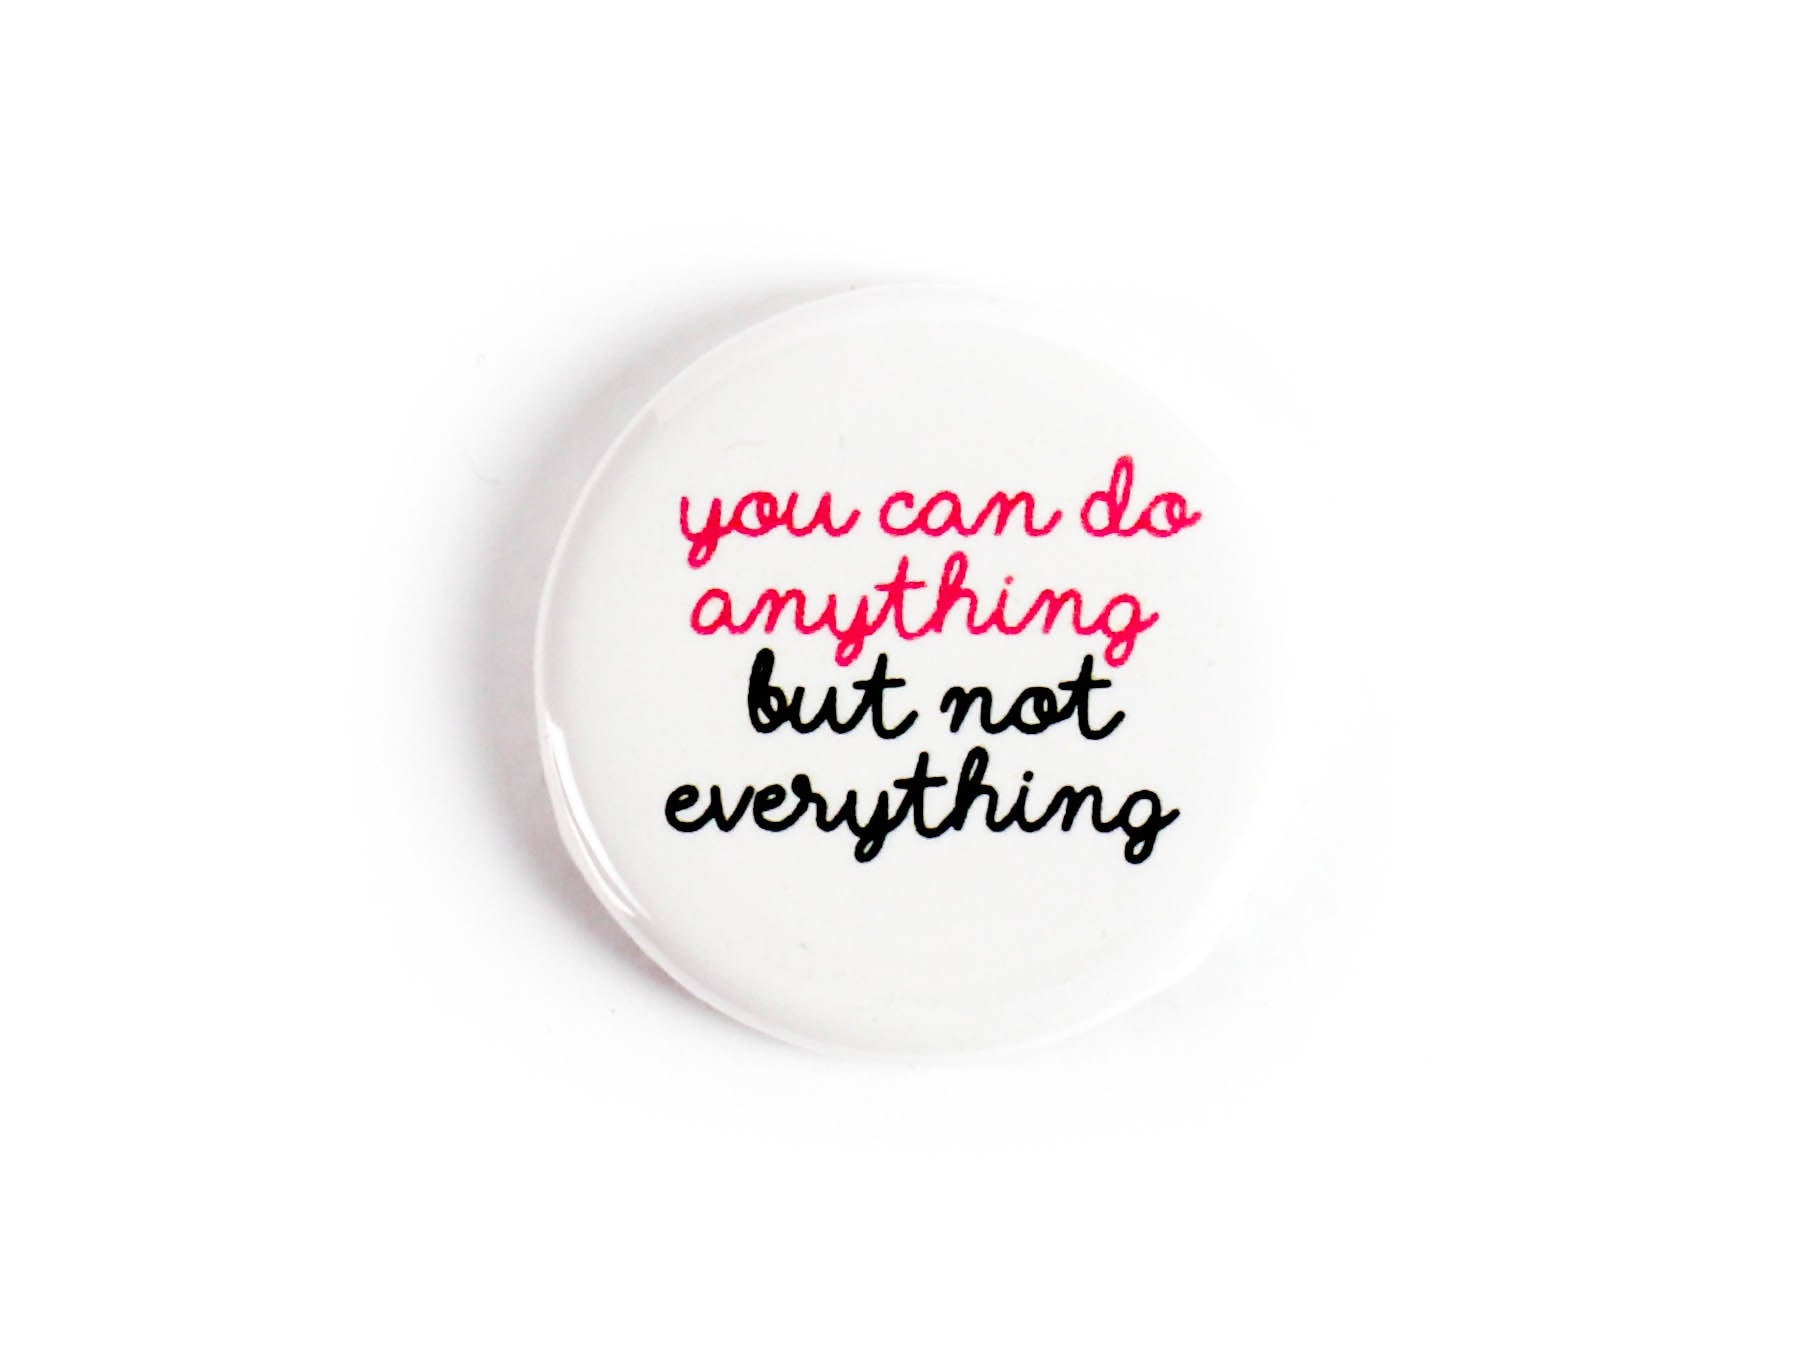 You can do anything, but not everything - Button or Strong Ceramic Magnets - Positive Affirmation, Reminder